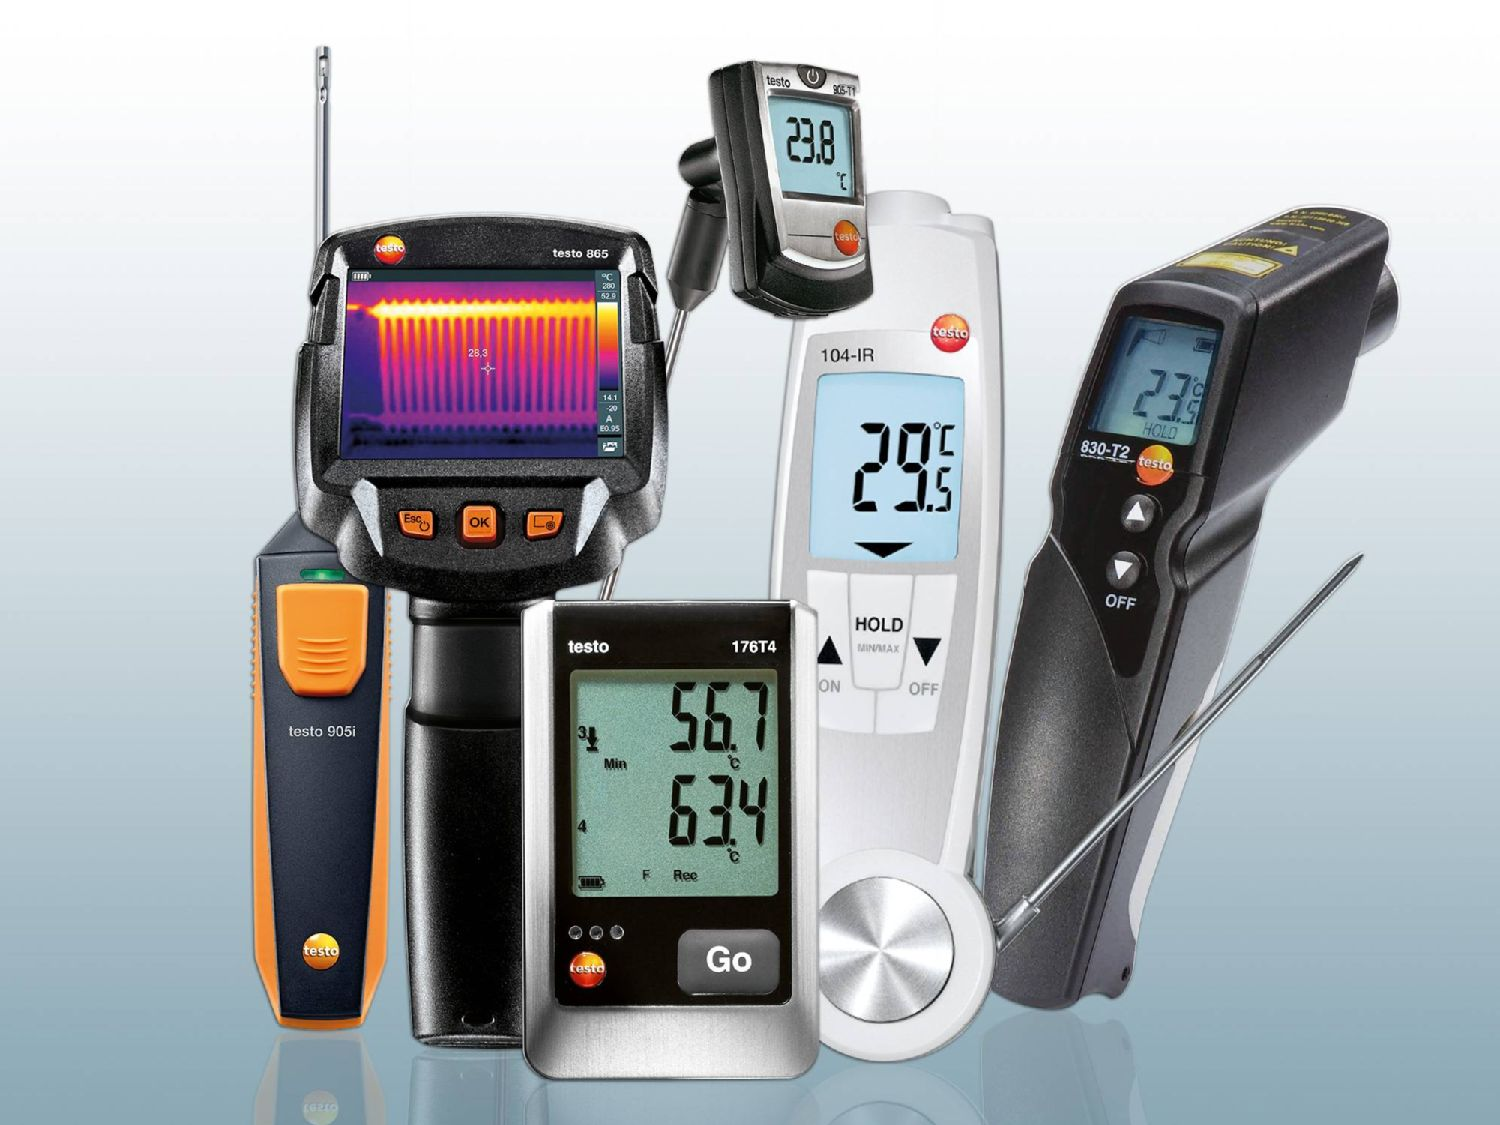 More measuring instruments for temperature measurement